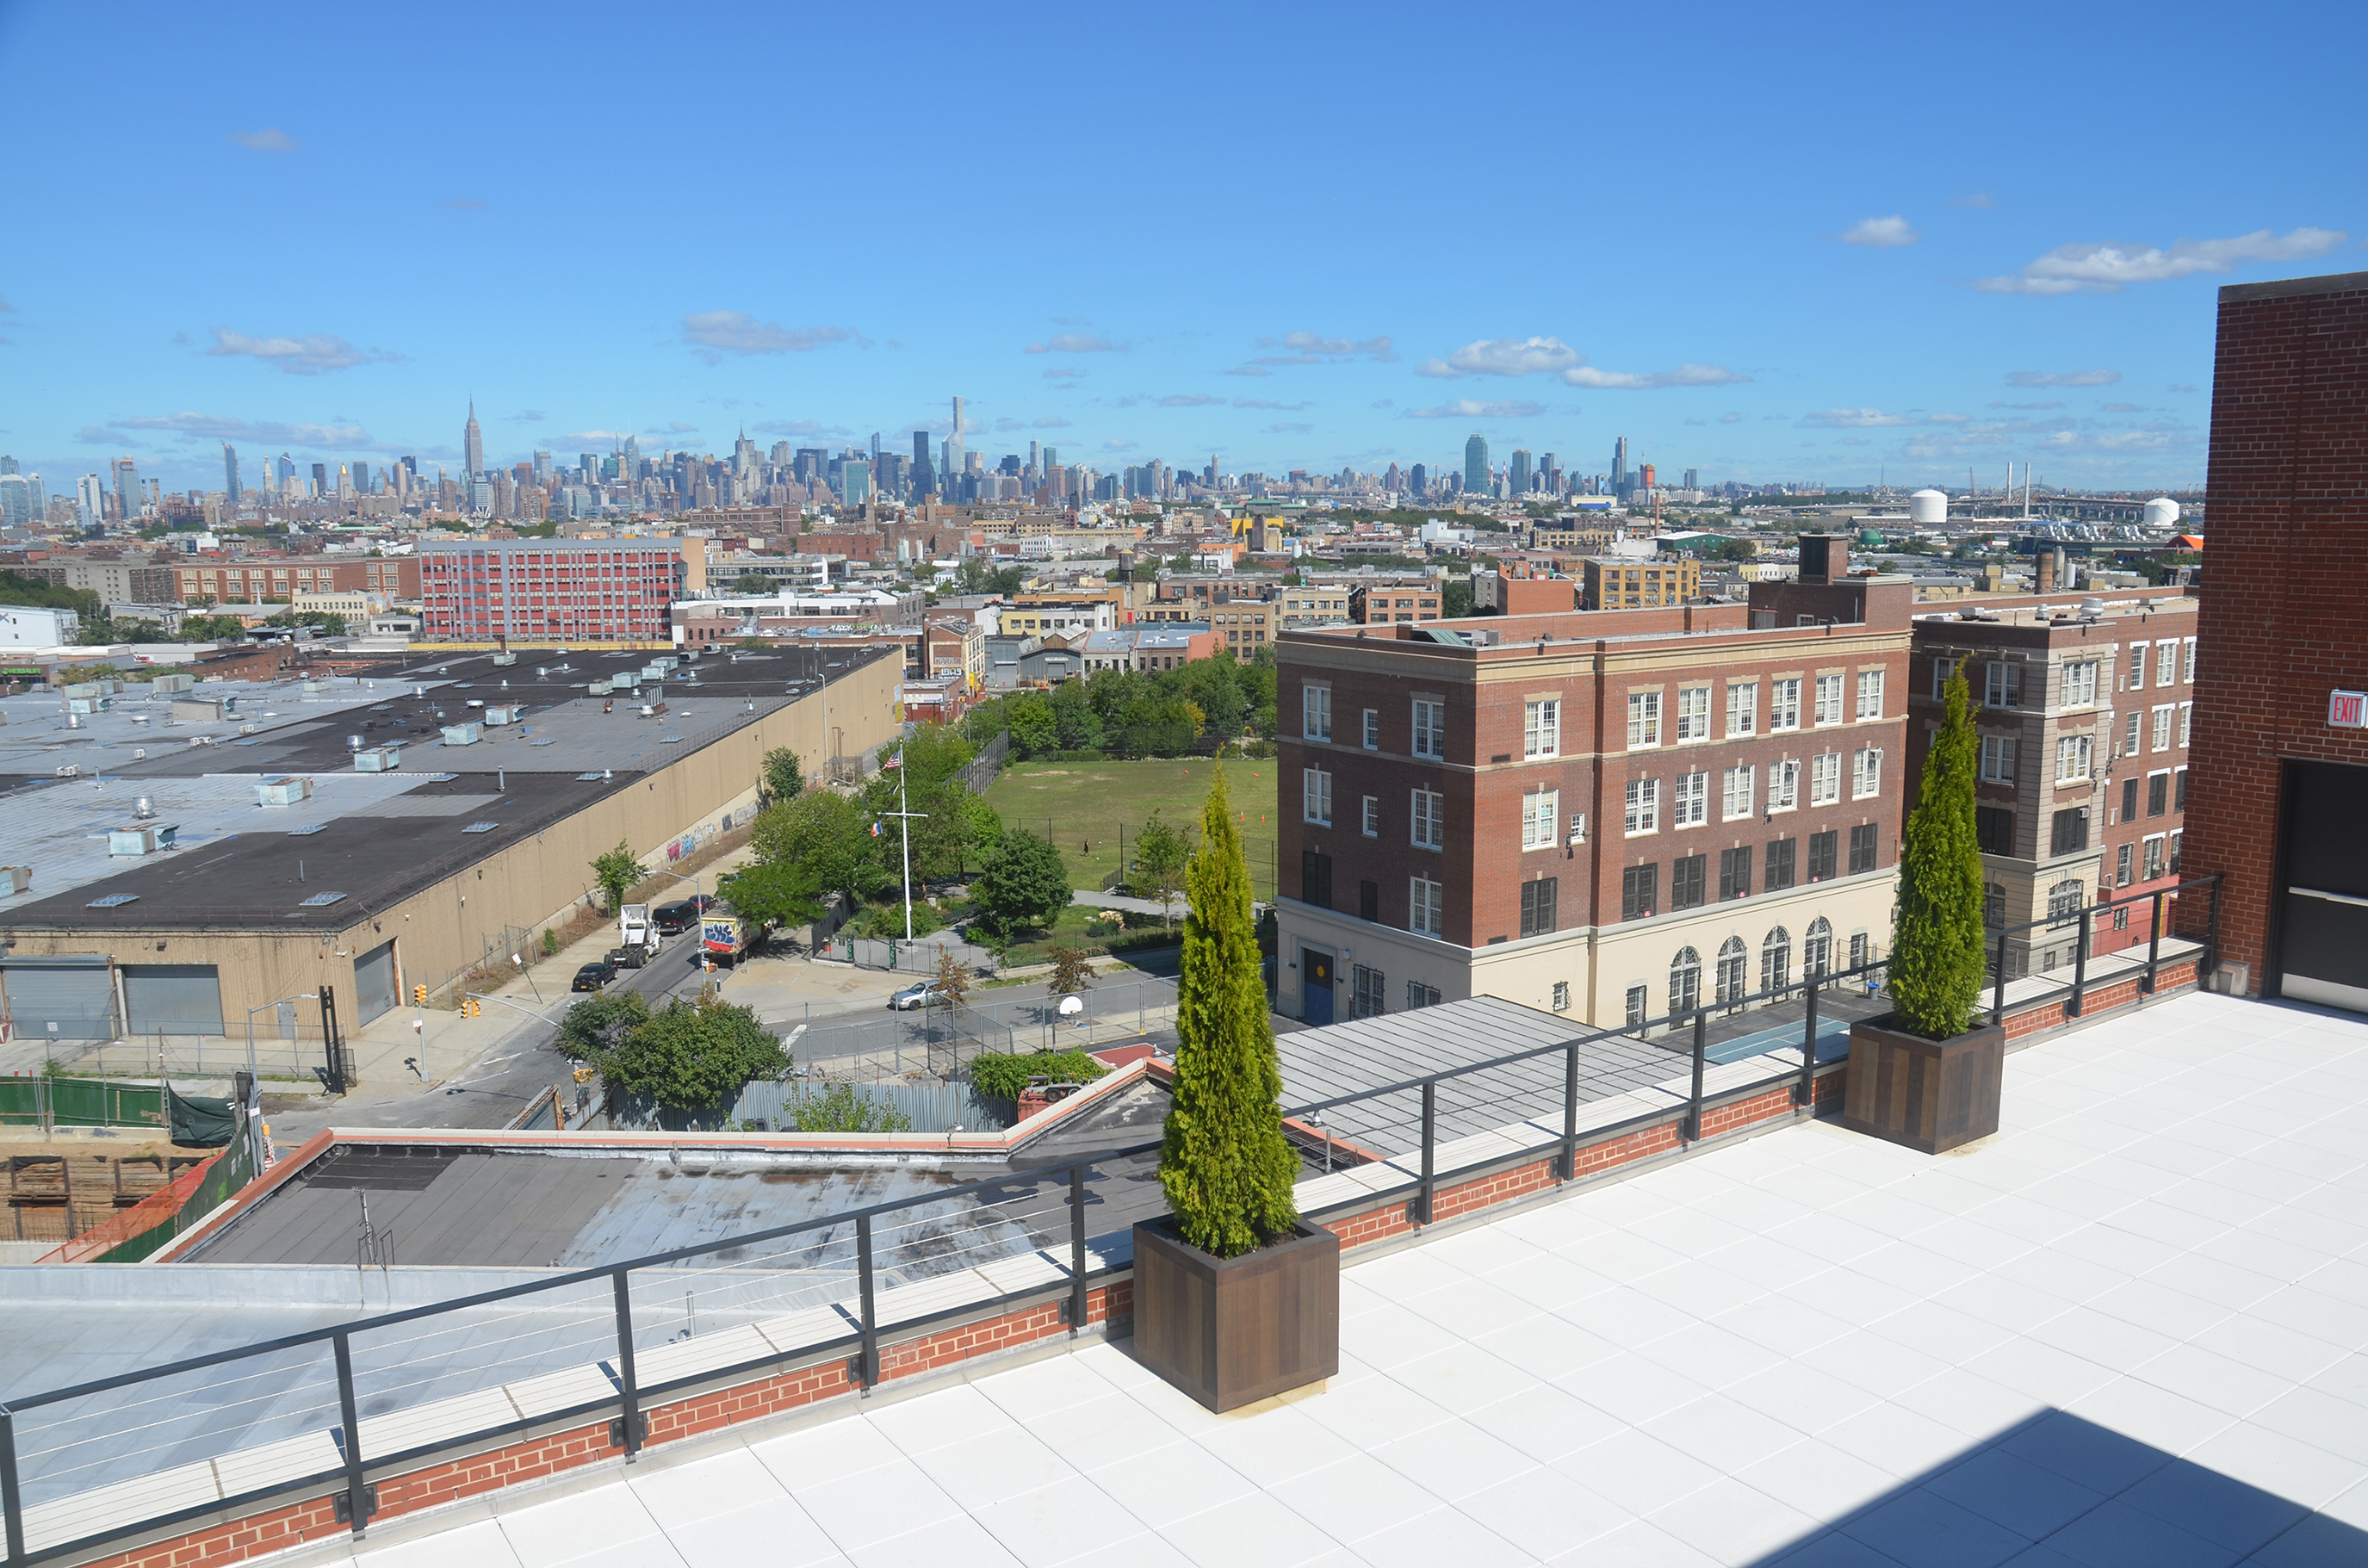 View from roof of 95 Evergreen Avenue